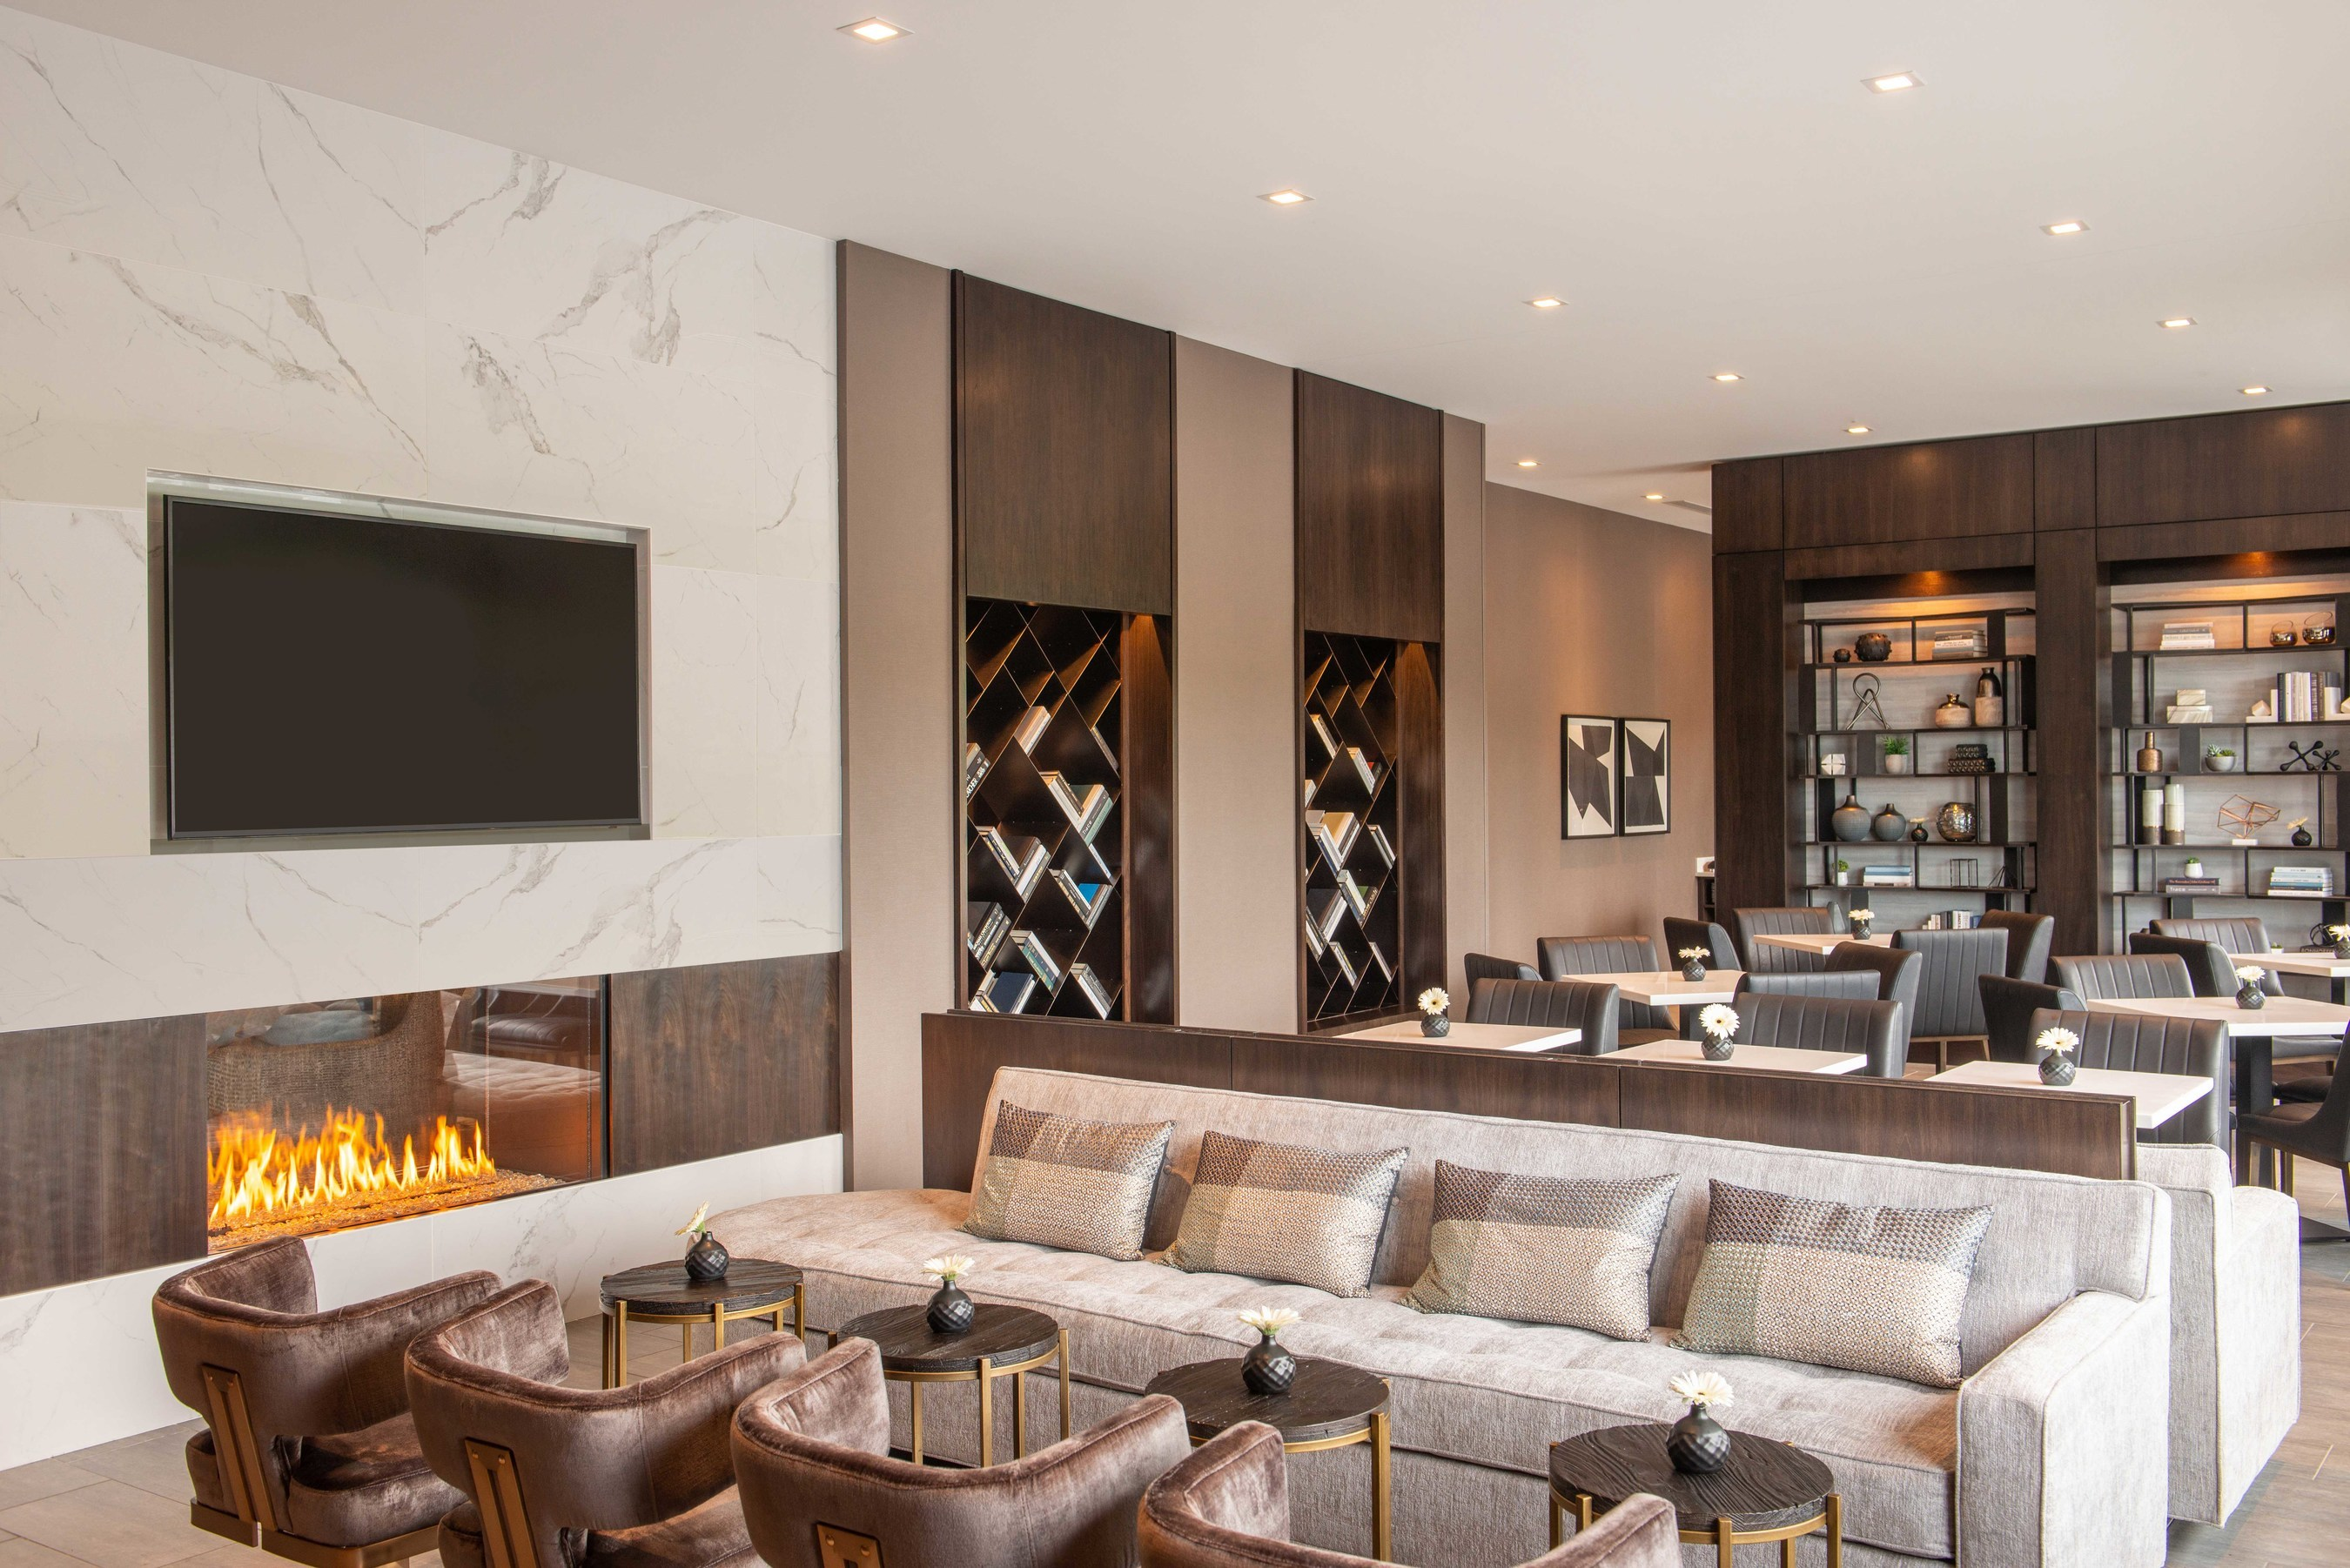 Colwen Hotels and IHG announce the opening of Holiday Inn Boston ...